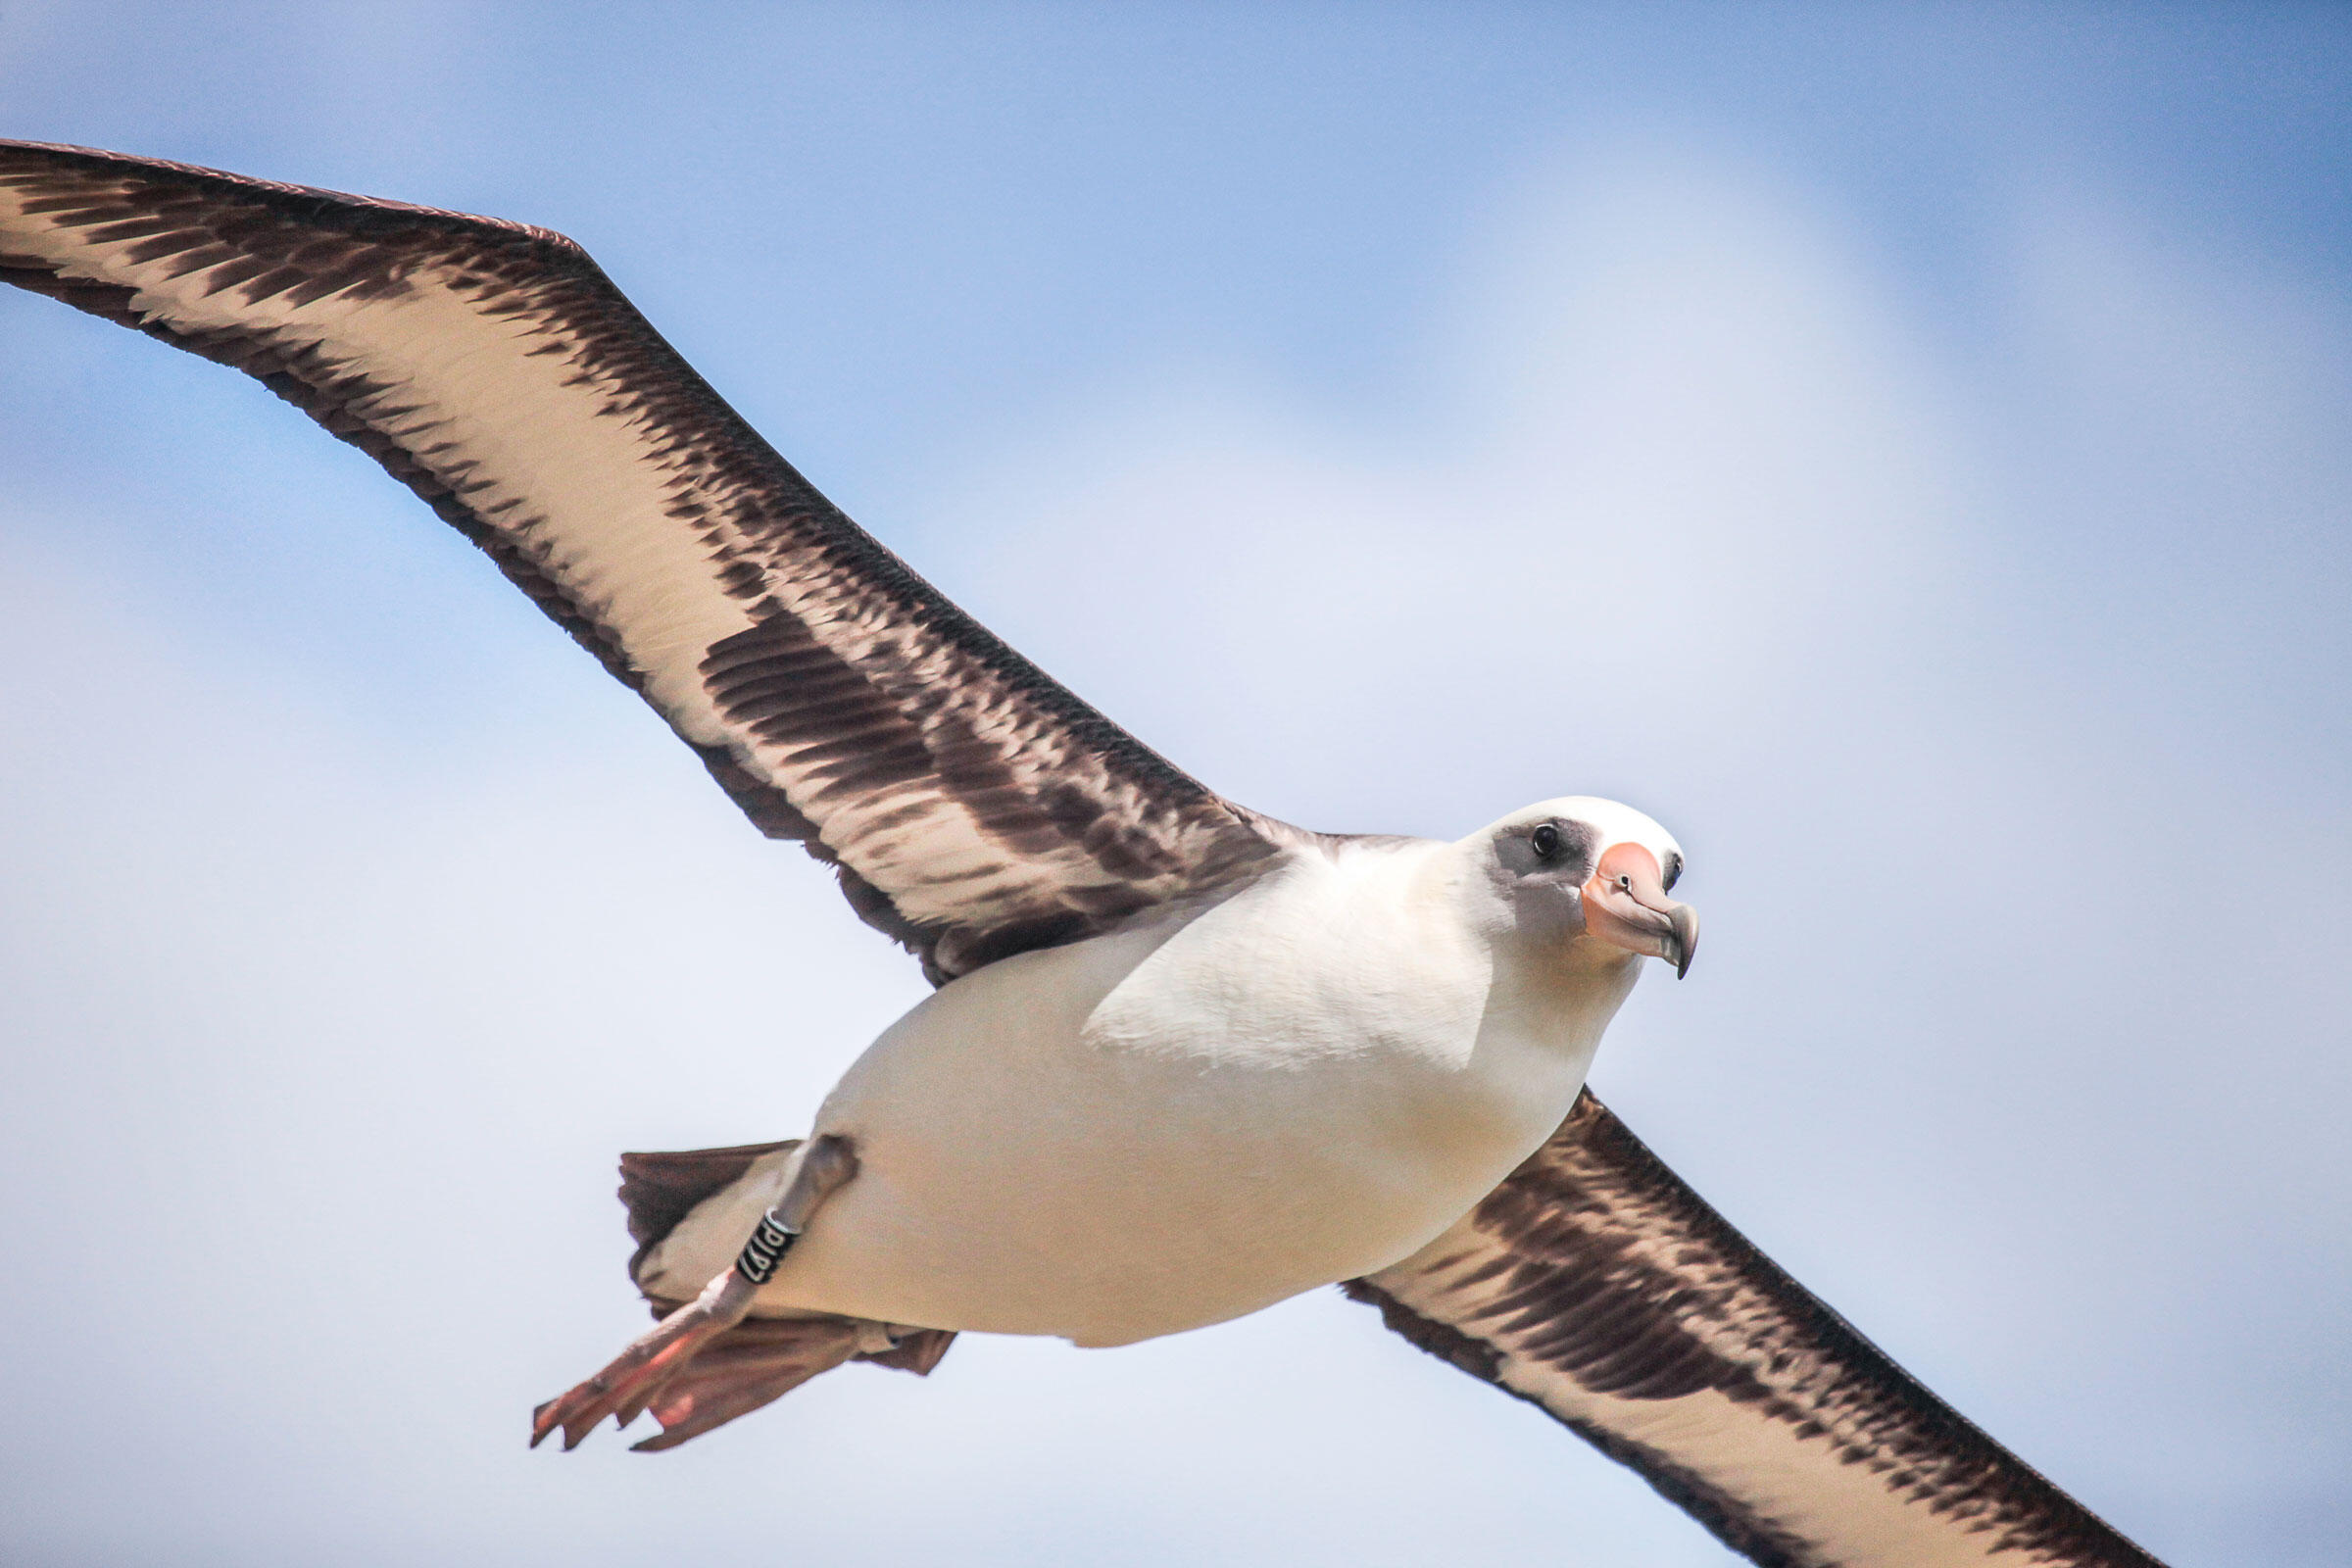 This Laysan Albatross was banded at Hawaii's Pacific Missile Range Facility, where birds nest dangerously close to to a U.S. Navy runway. Kim Steutermann Rogers